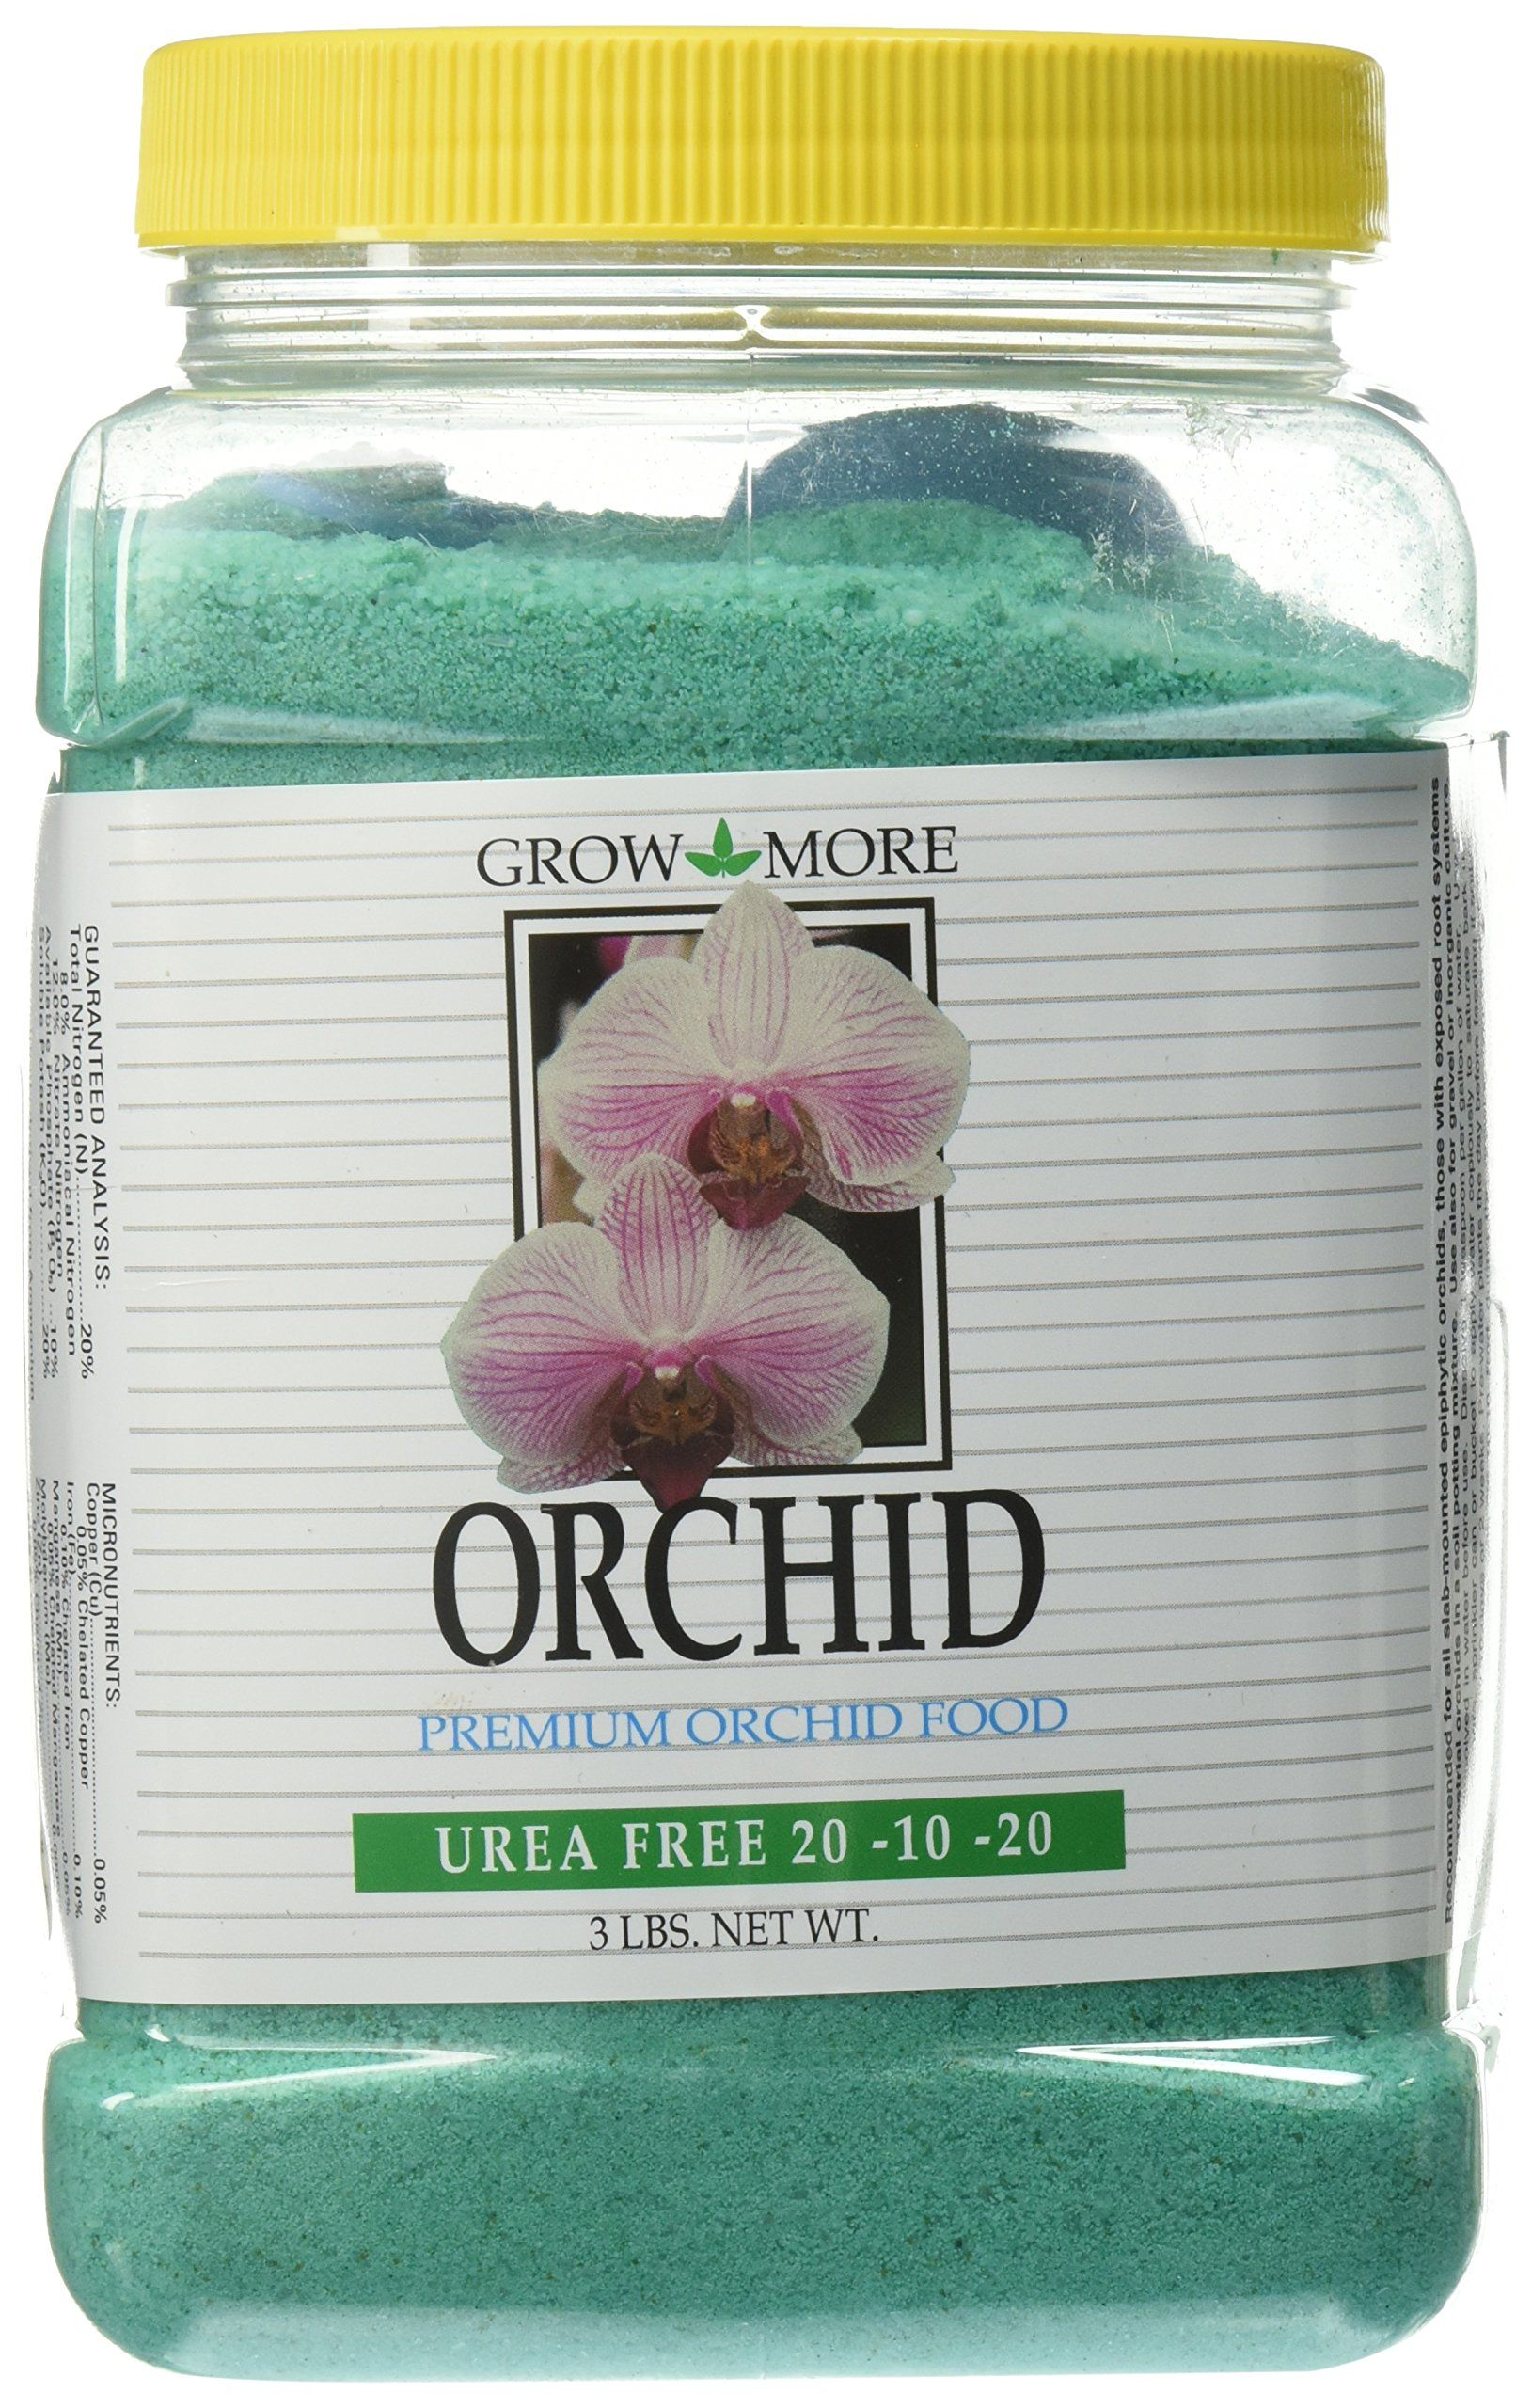 Grow More 7517 Urea Free Orchid 201020 Fertilizer 3pound You Can Find More Details By Visiting The Image Link Orchid Food Fertilizer Orchids